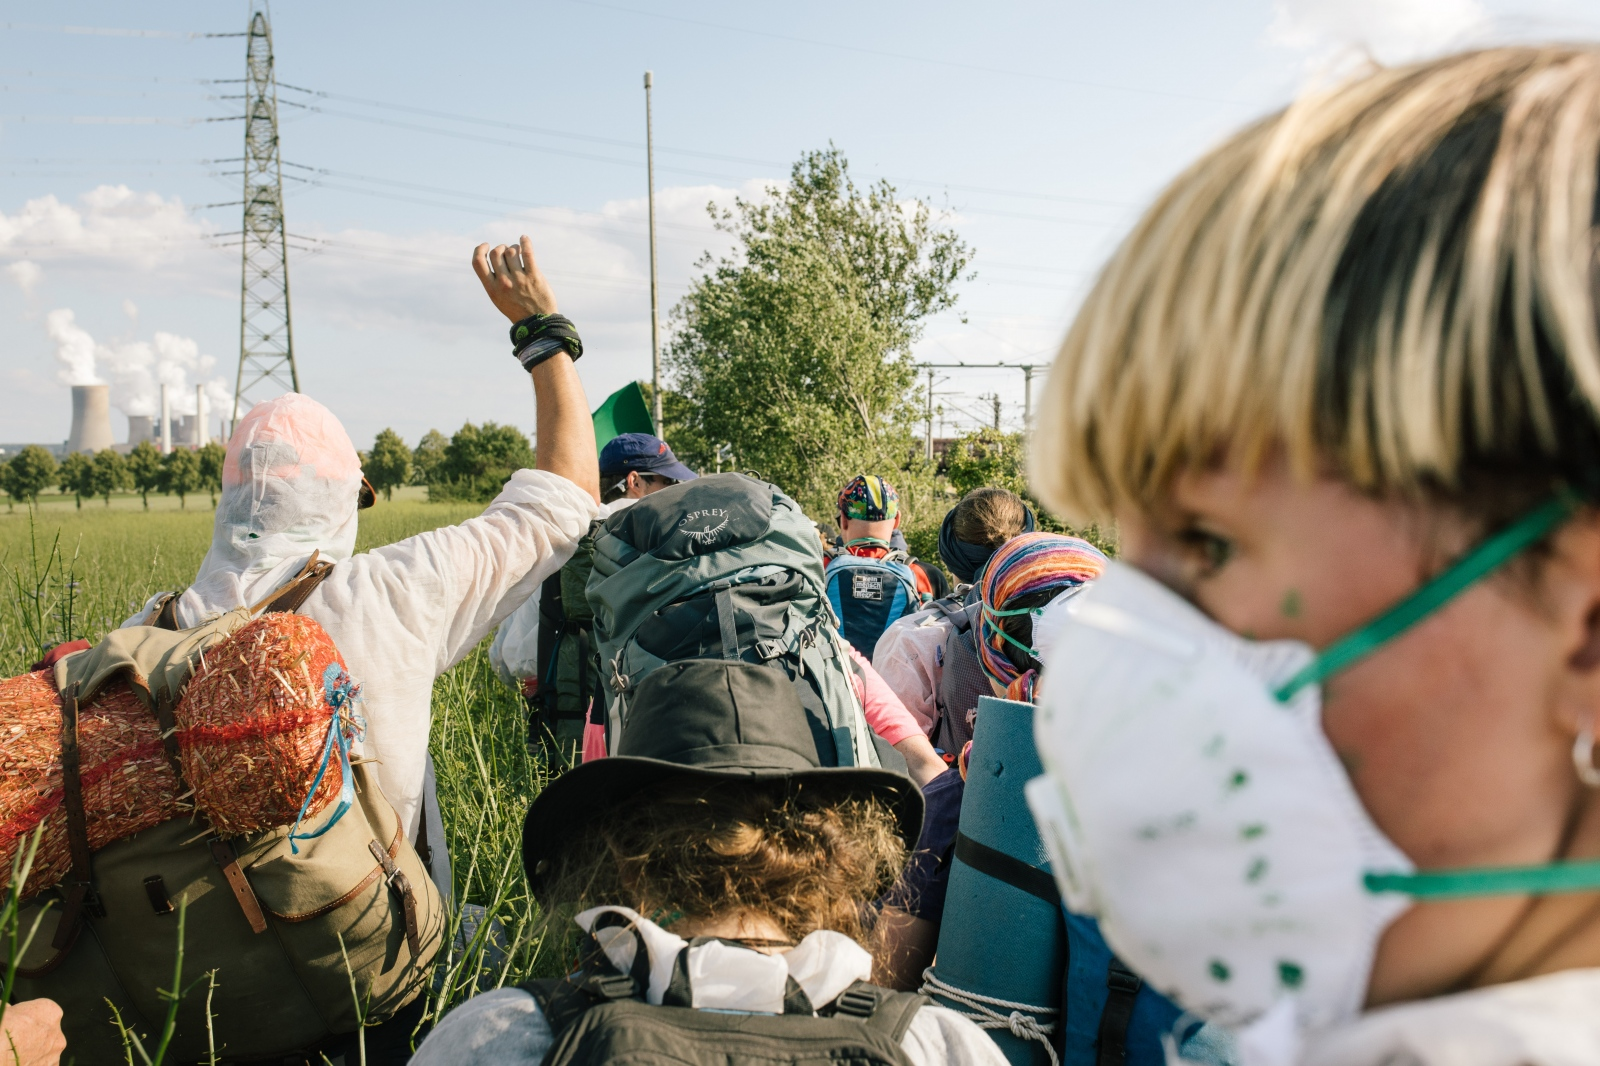 A group of Ende Gelände activists moves towards the rails of the coal-train to block these. 06-21-2019